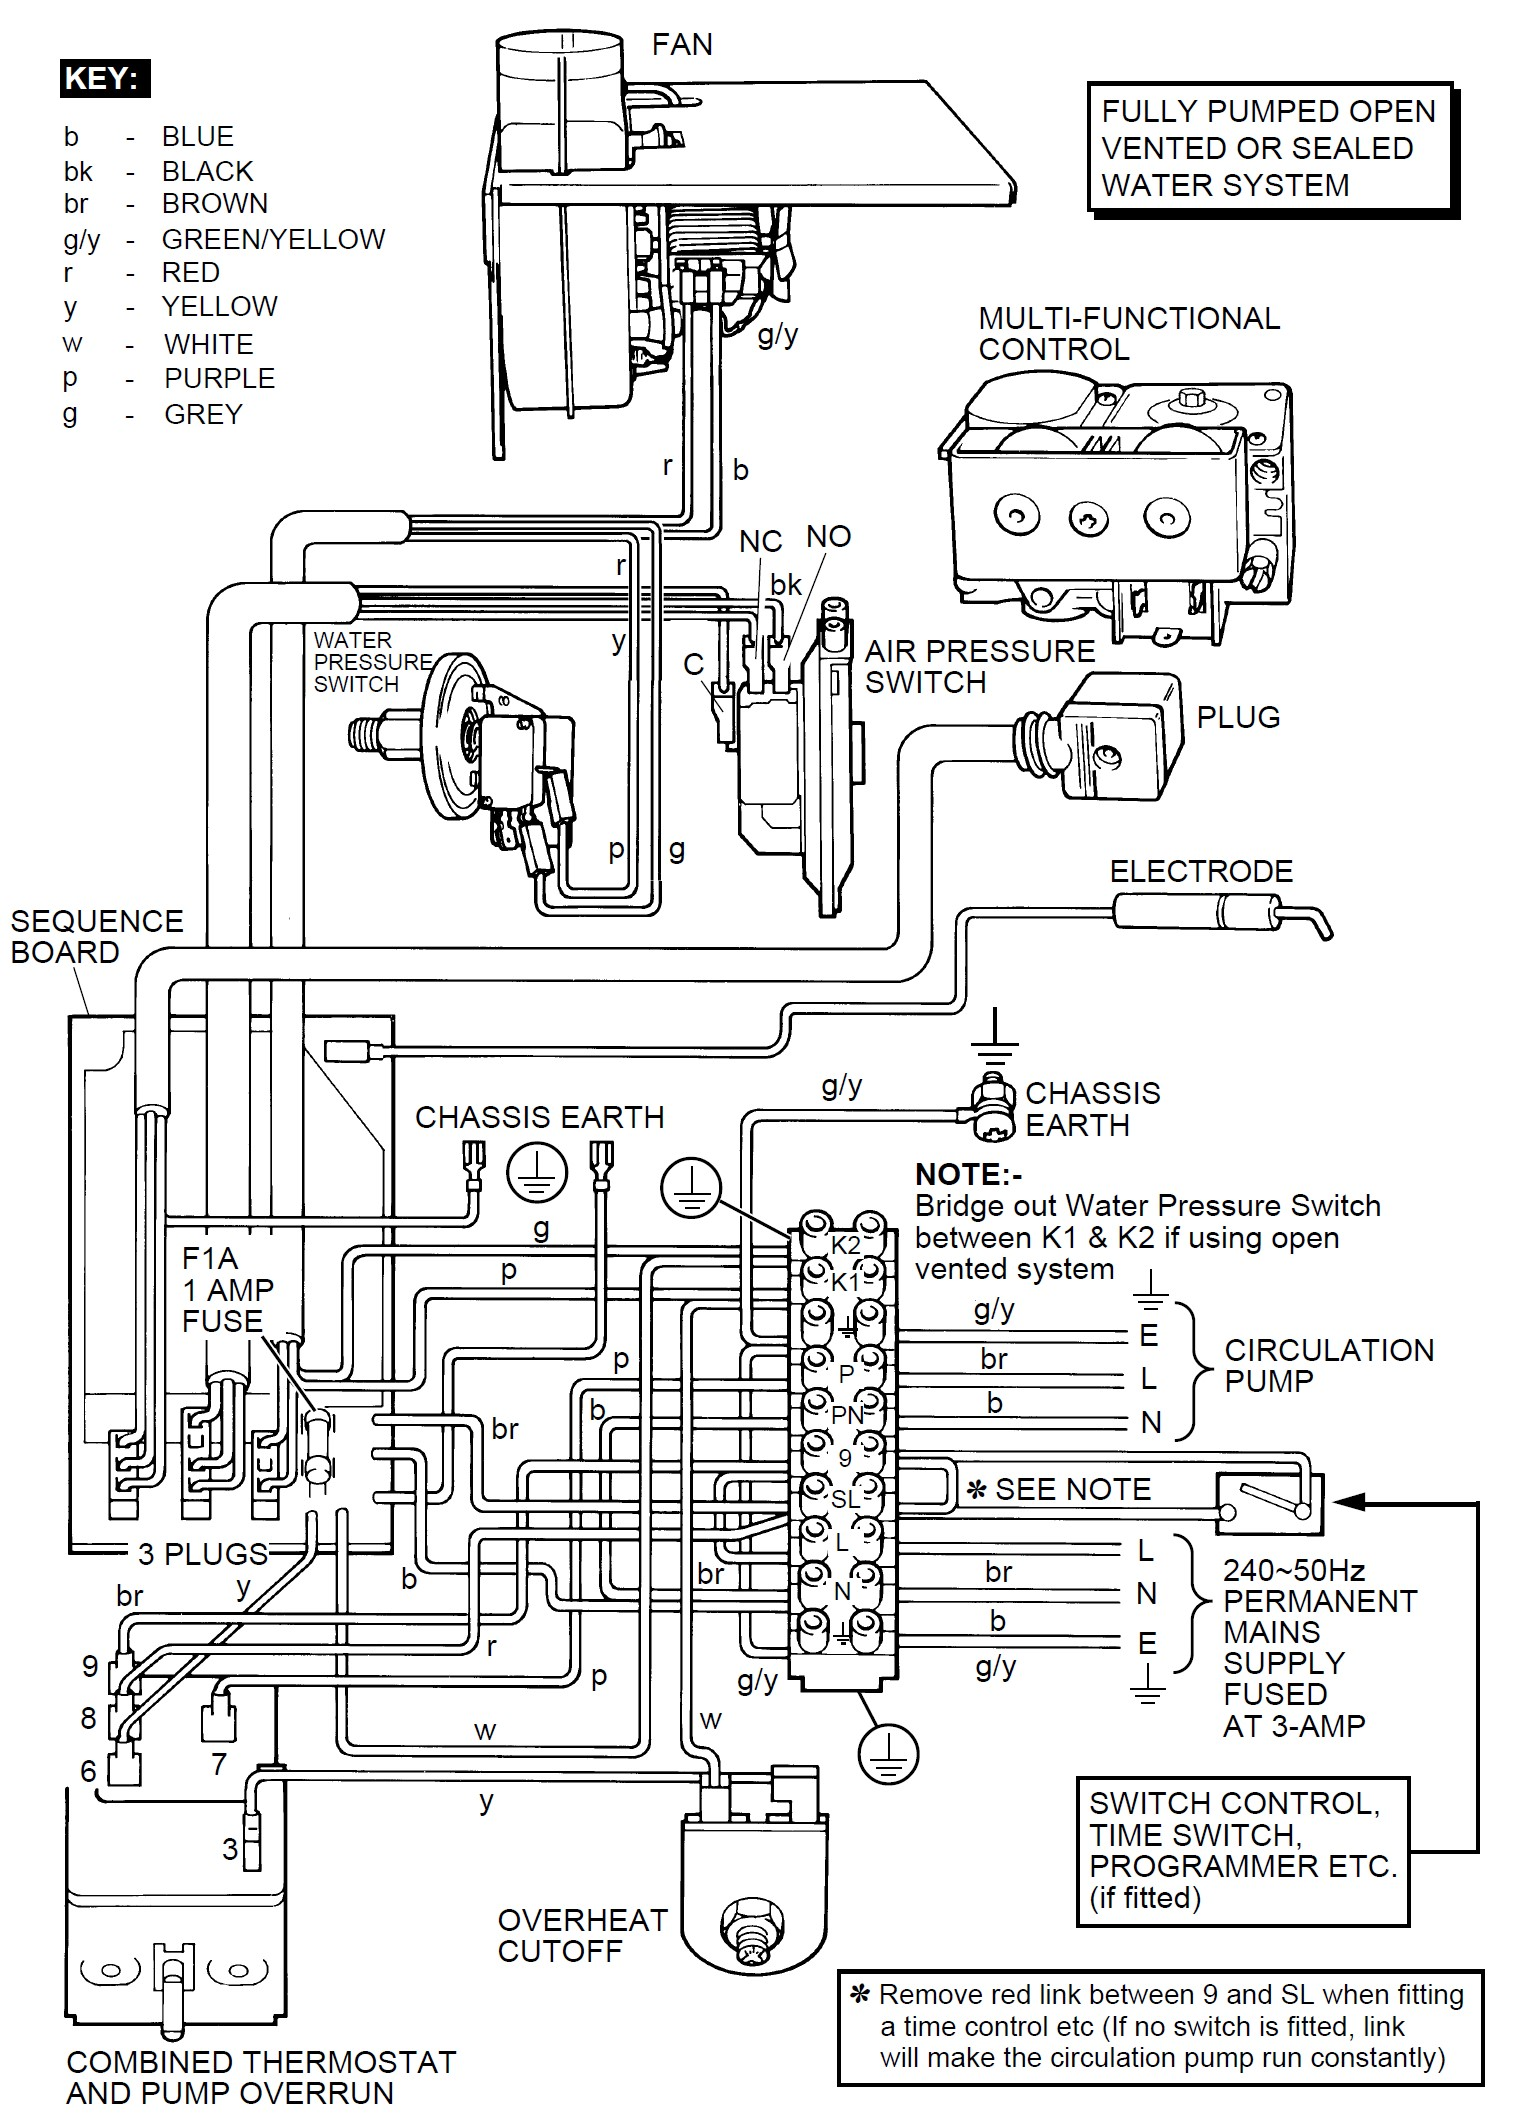 S Plan Wiring Diagram With Pump Overrun : 39 Wiring